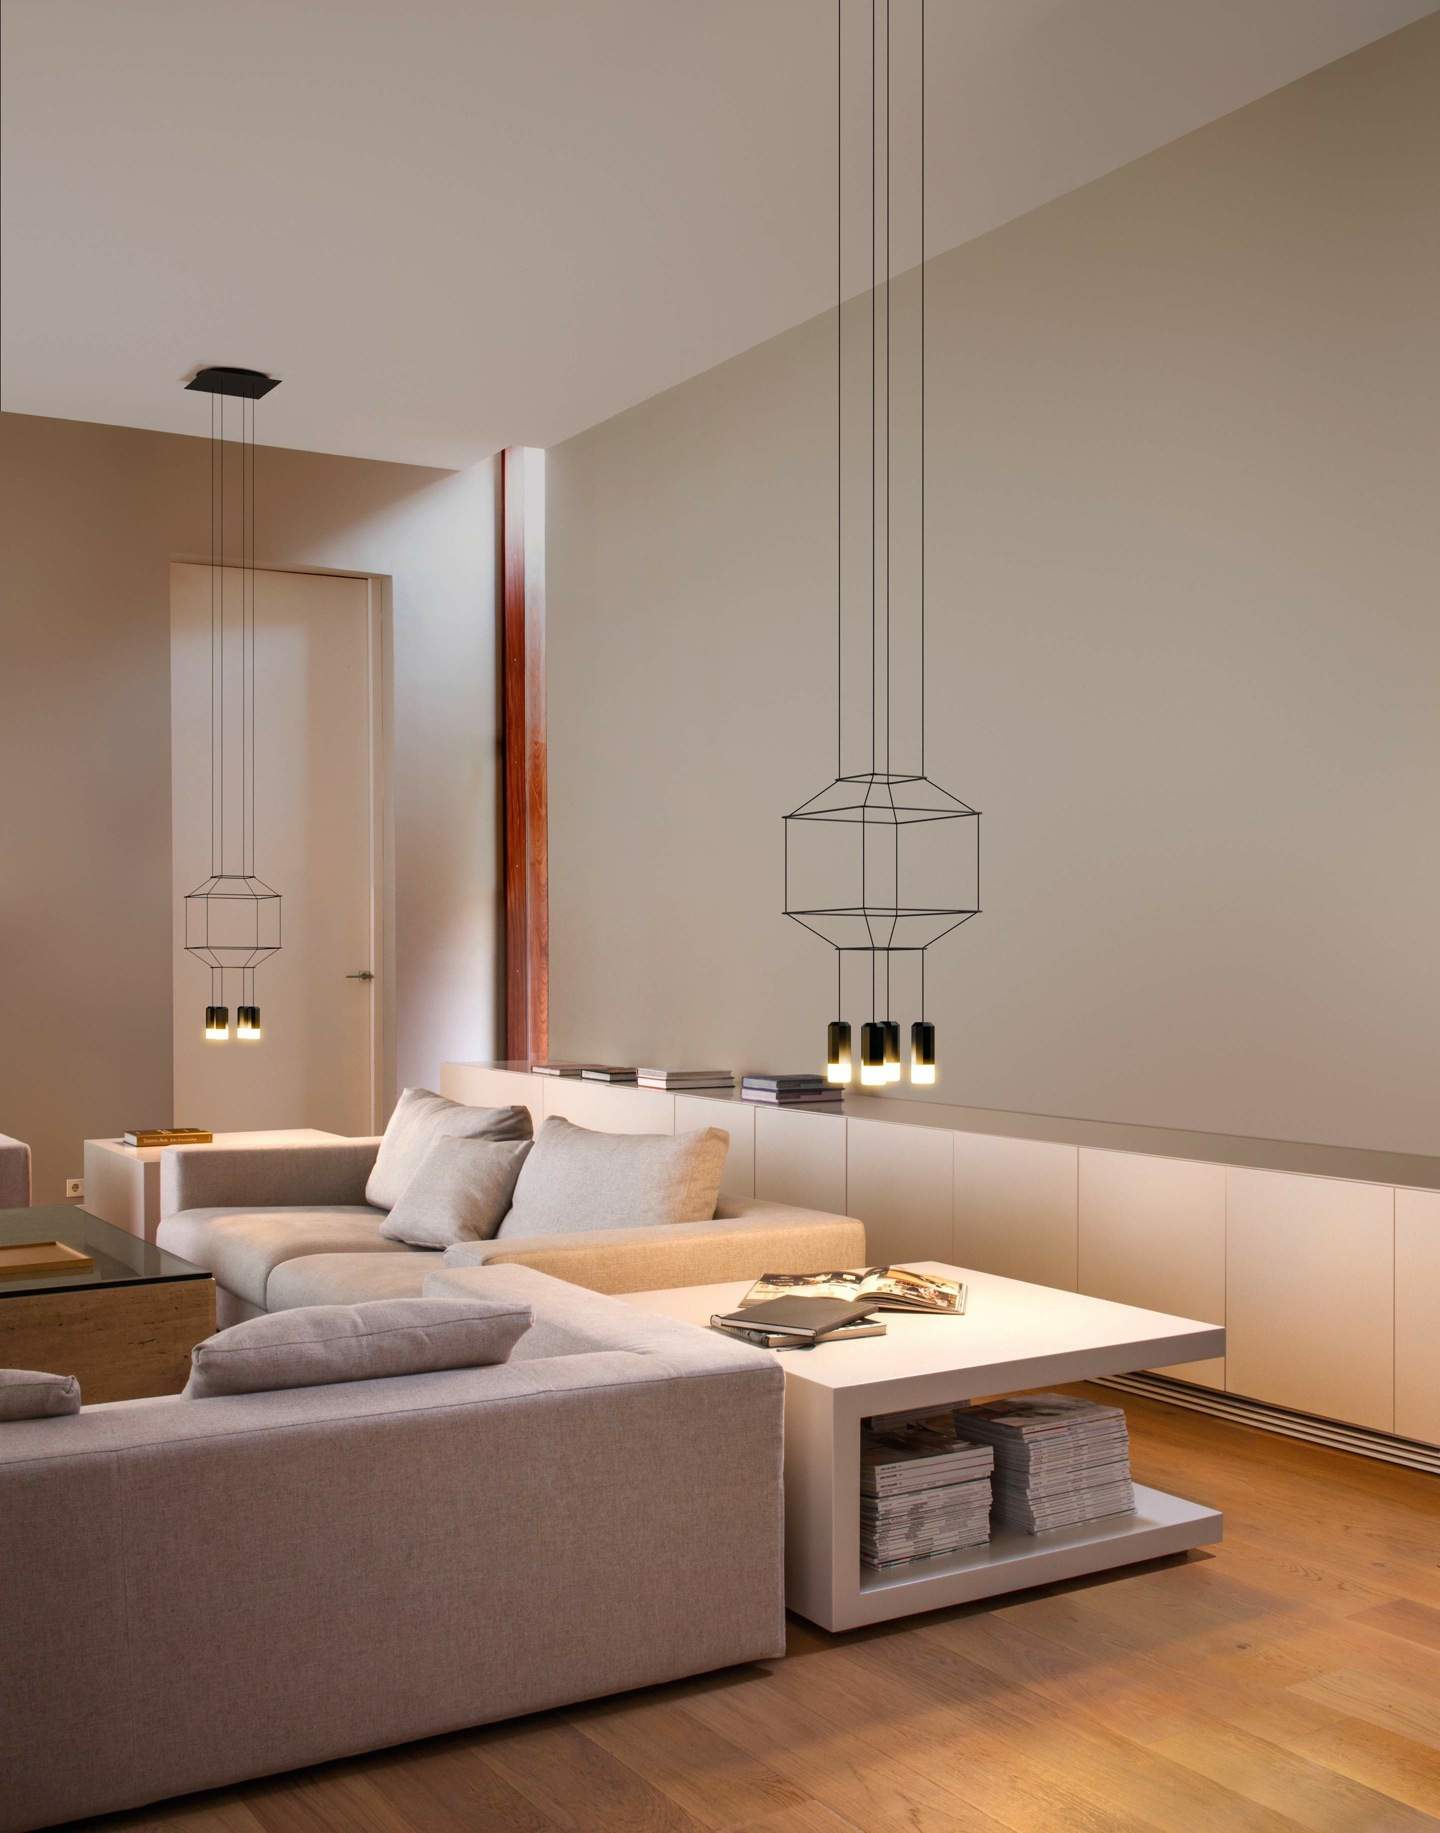 vibia wireflow lin aire suspension 200cm 2xled 4 5w dimmable 0320 04. Black Bedroom Furniture Sets. Home Design Ideas